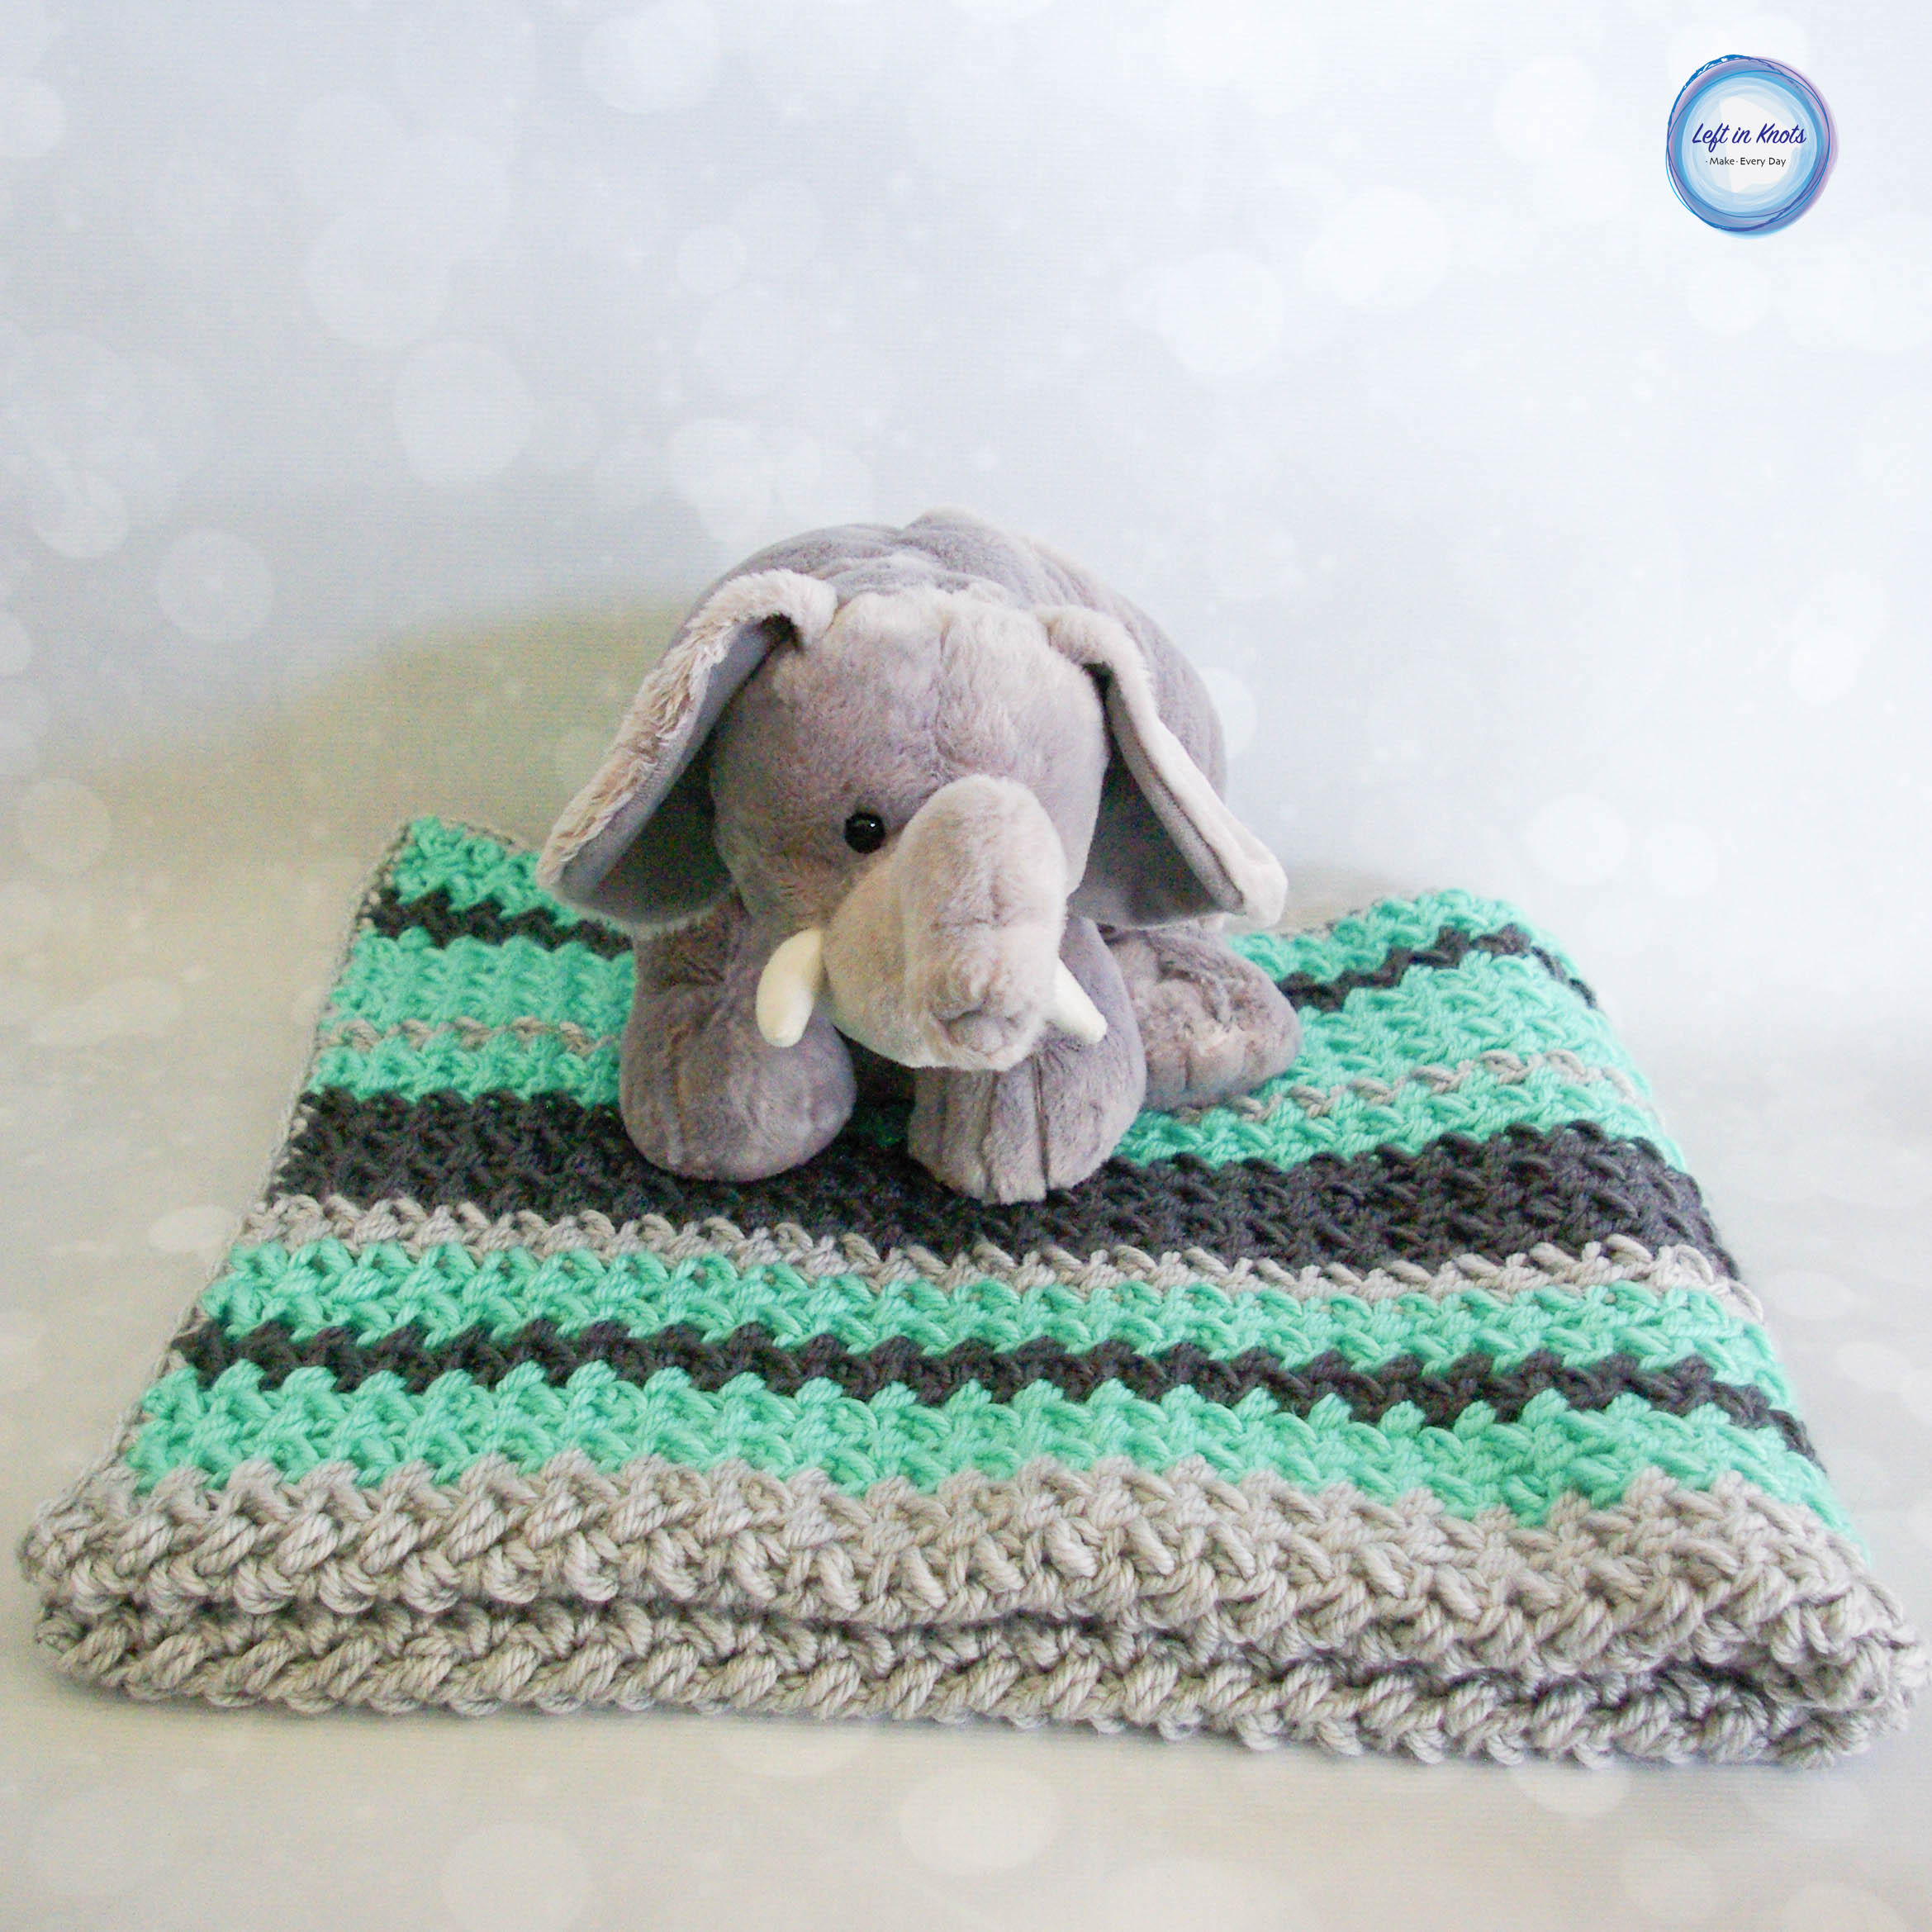 This crochet baby blanket uses a variation of the bean stitch called the mini-bean or baby bean stitch to produce all that yummy texture you see there! And guess what? I have a video tutorial to get you started with this project if you need it!